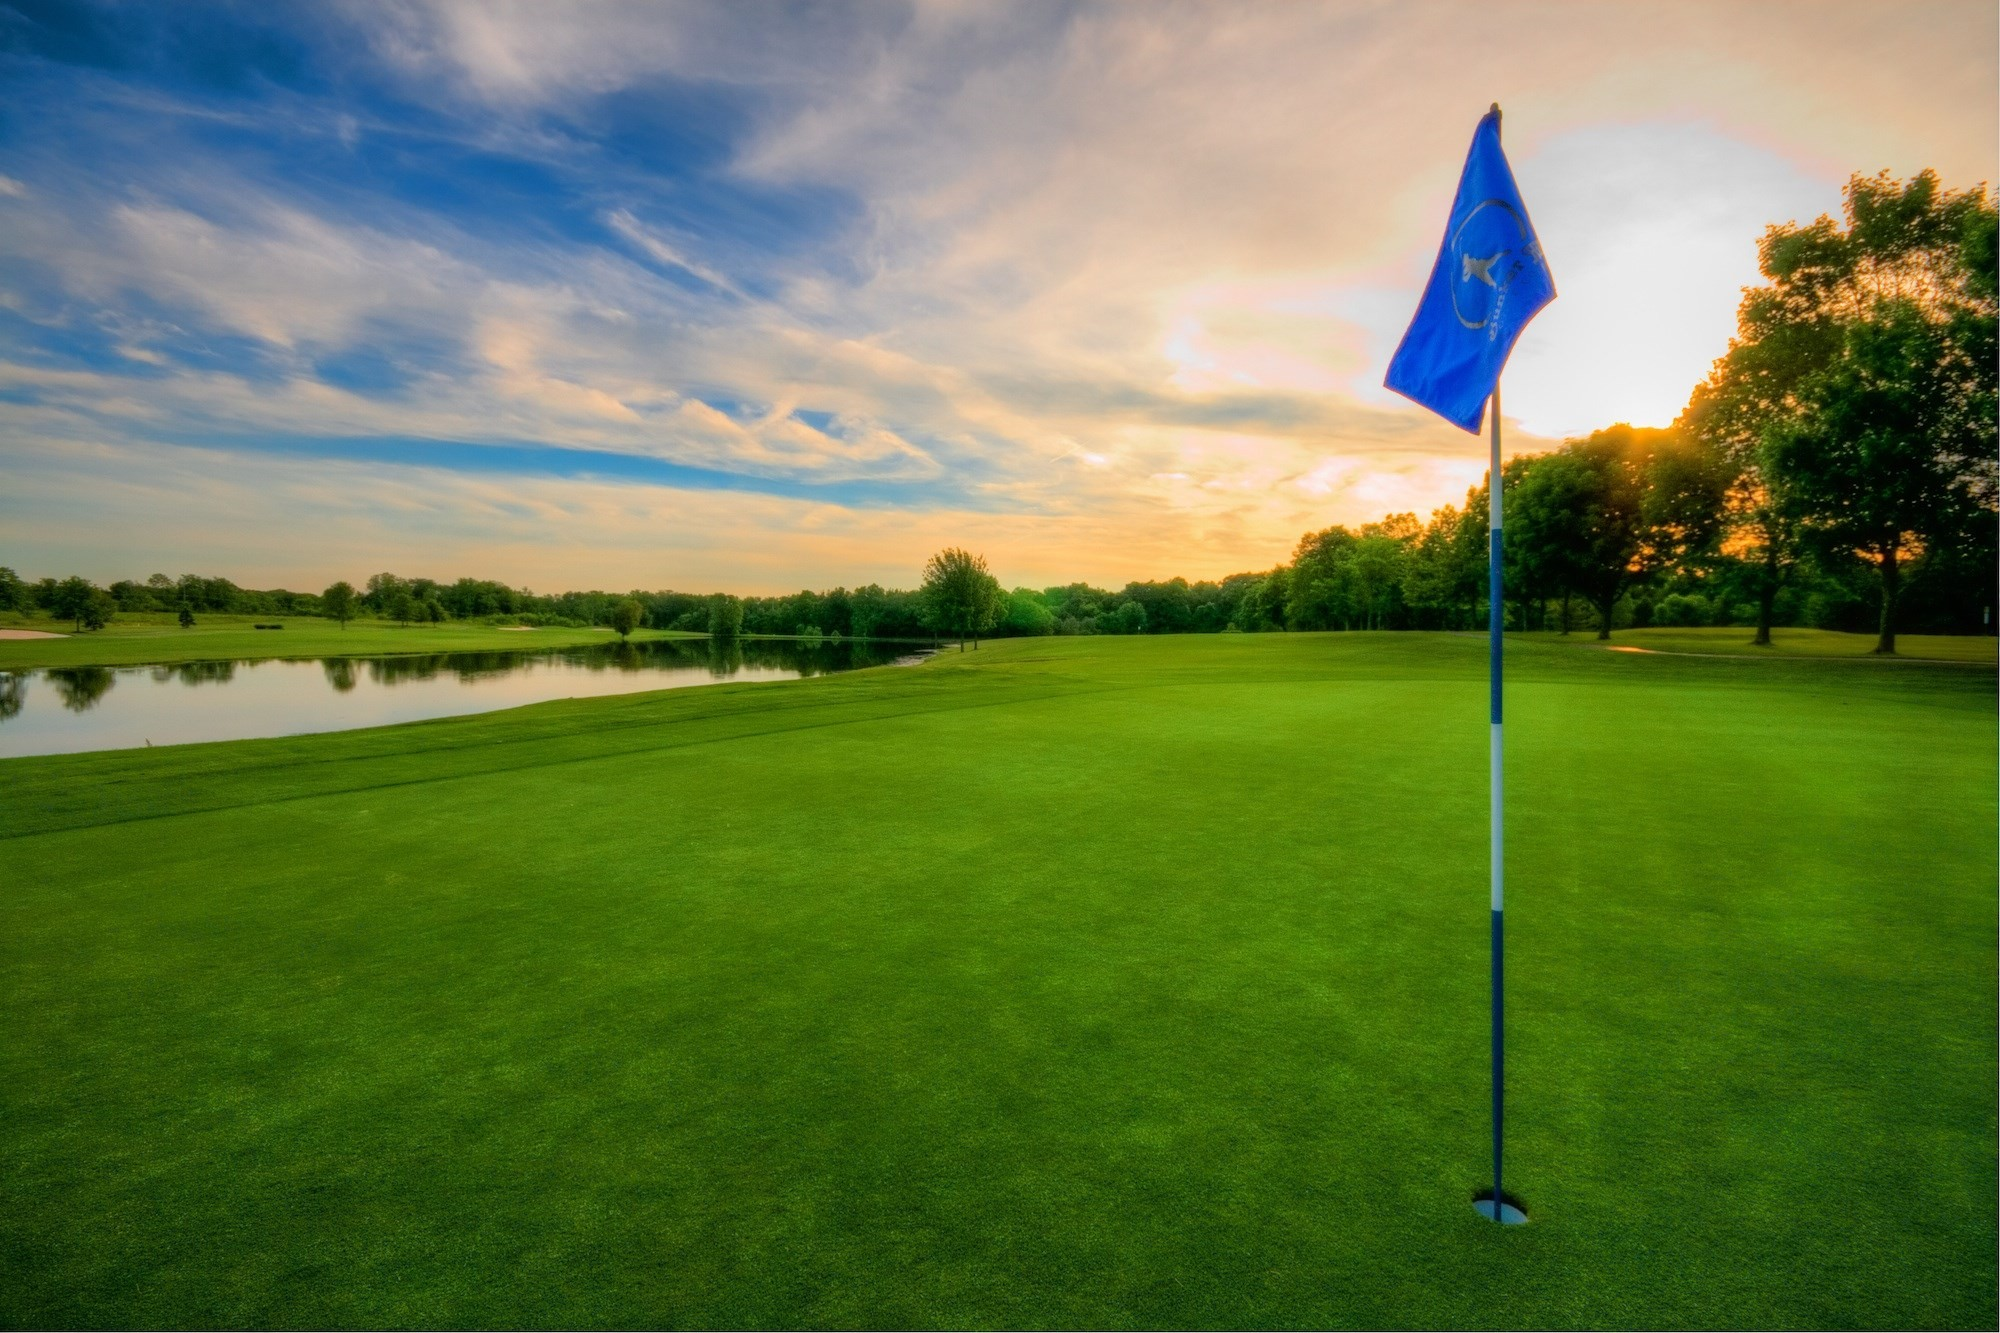 Golf background download free stunning high resolution - Ball image download ...